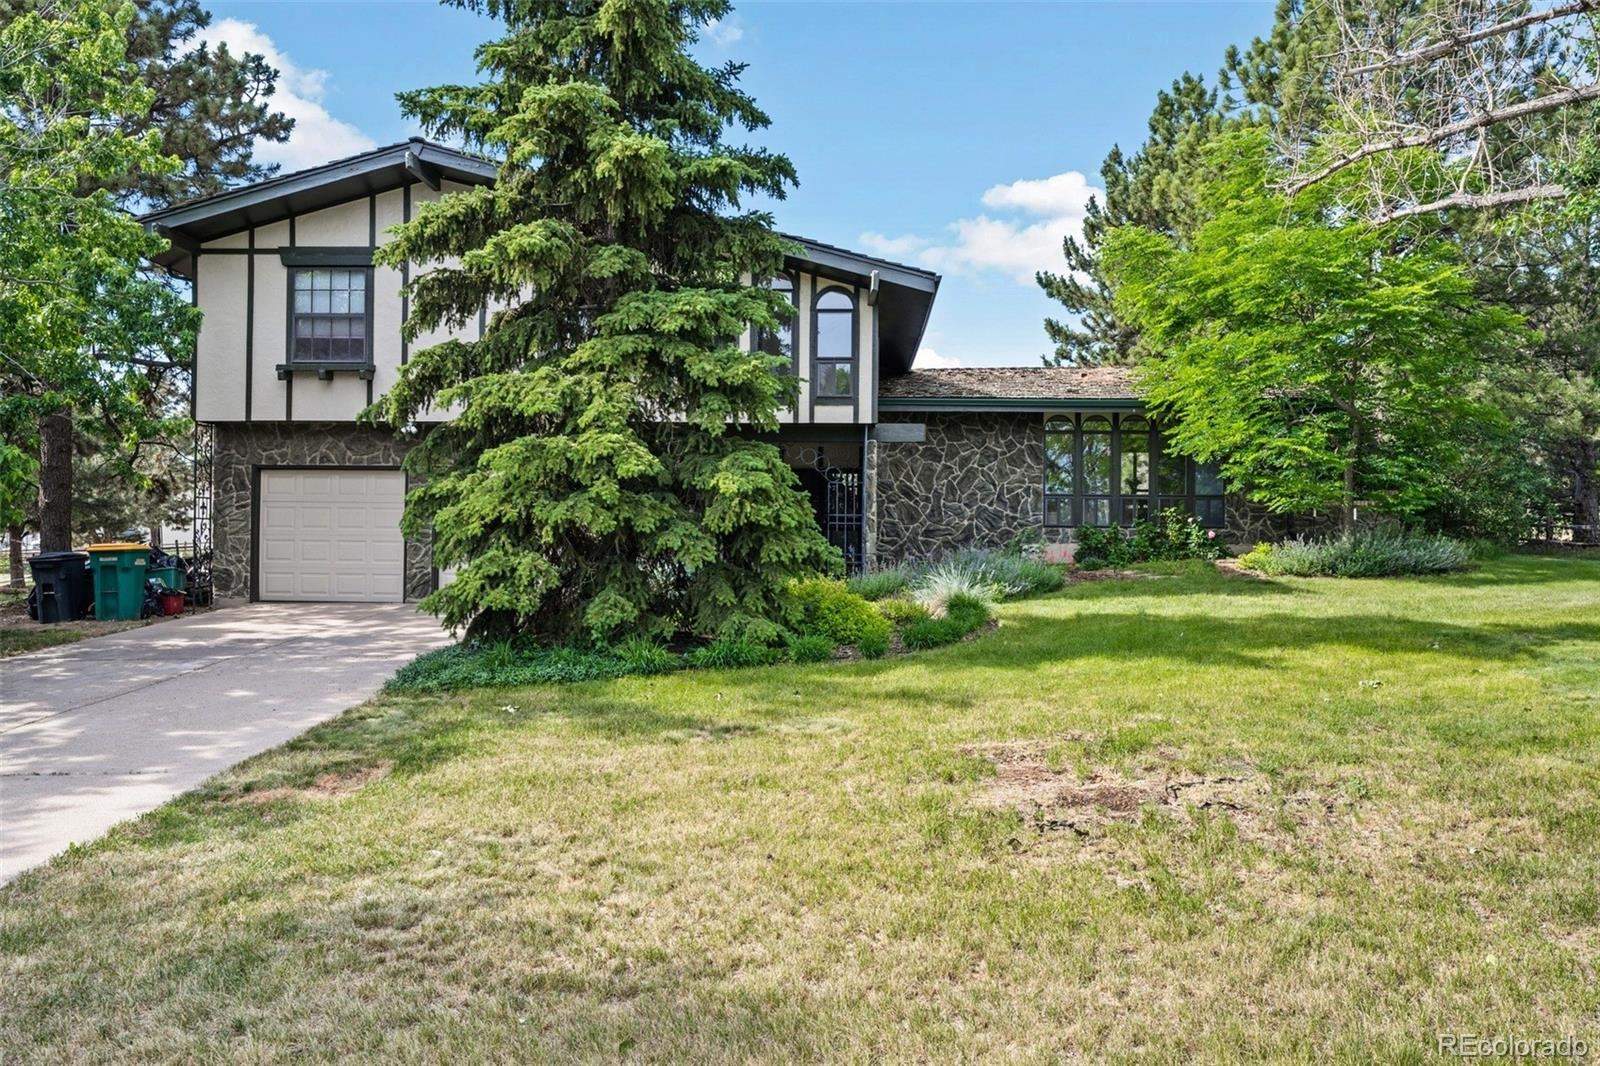 17160 W 57th Place, Golden, CO 80403 - #: 7985380